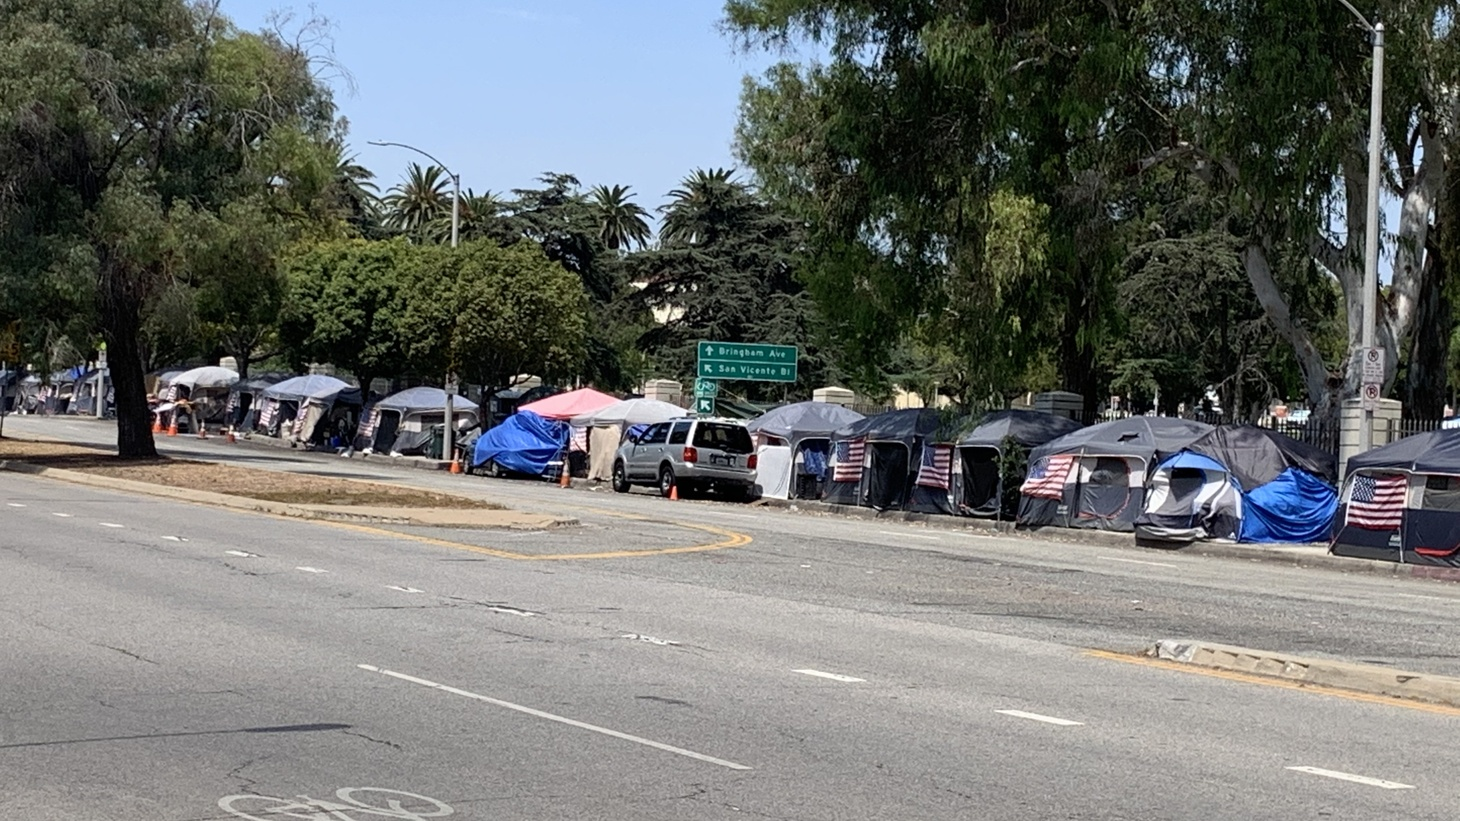 Right outside the West LA VA, there are more than two dozen identical tents with matching American flags pinned to the outside.